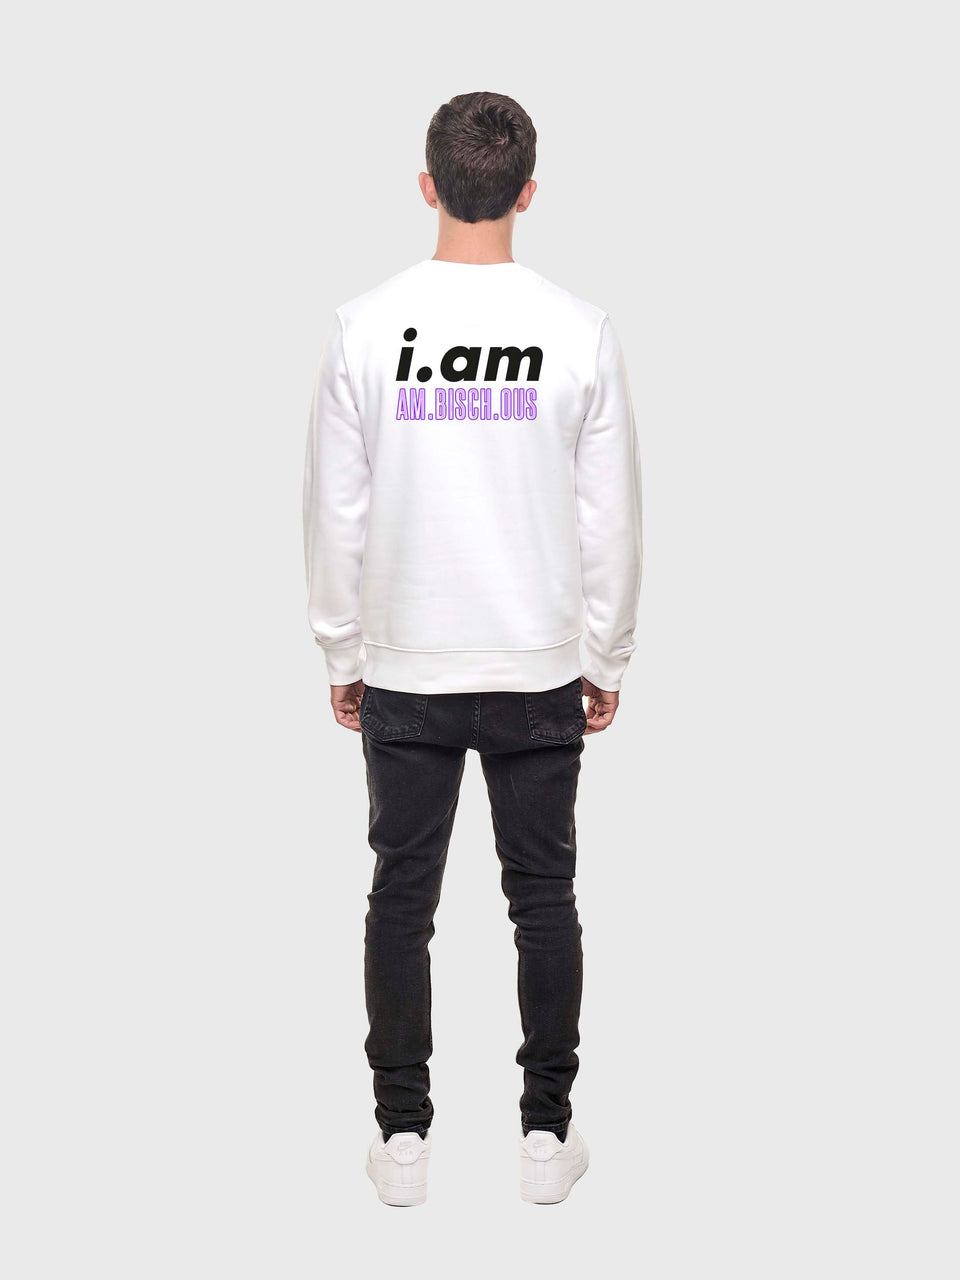 Am.bisch.ous - White - Unisex sweatshirt